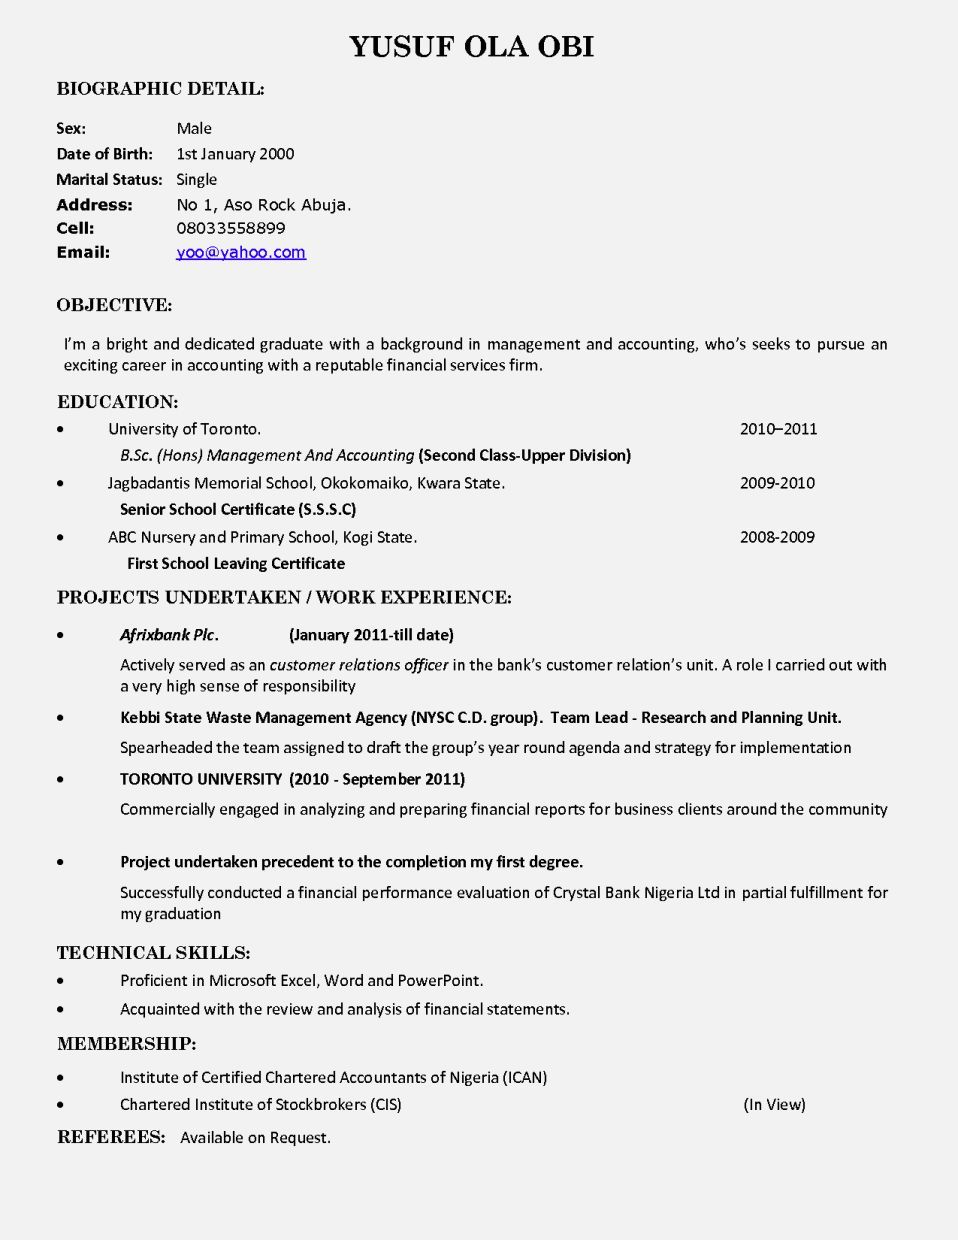 Copy And Paste Resume Templates Httpinformationgateresumelettercvsamplesforfresh